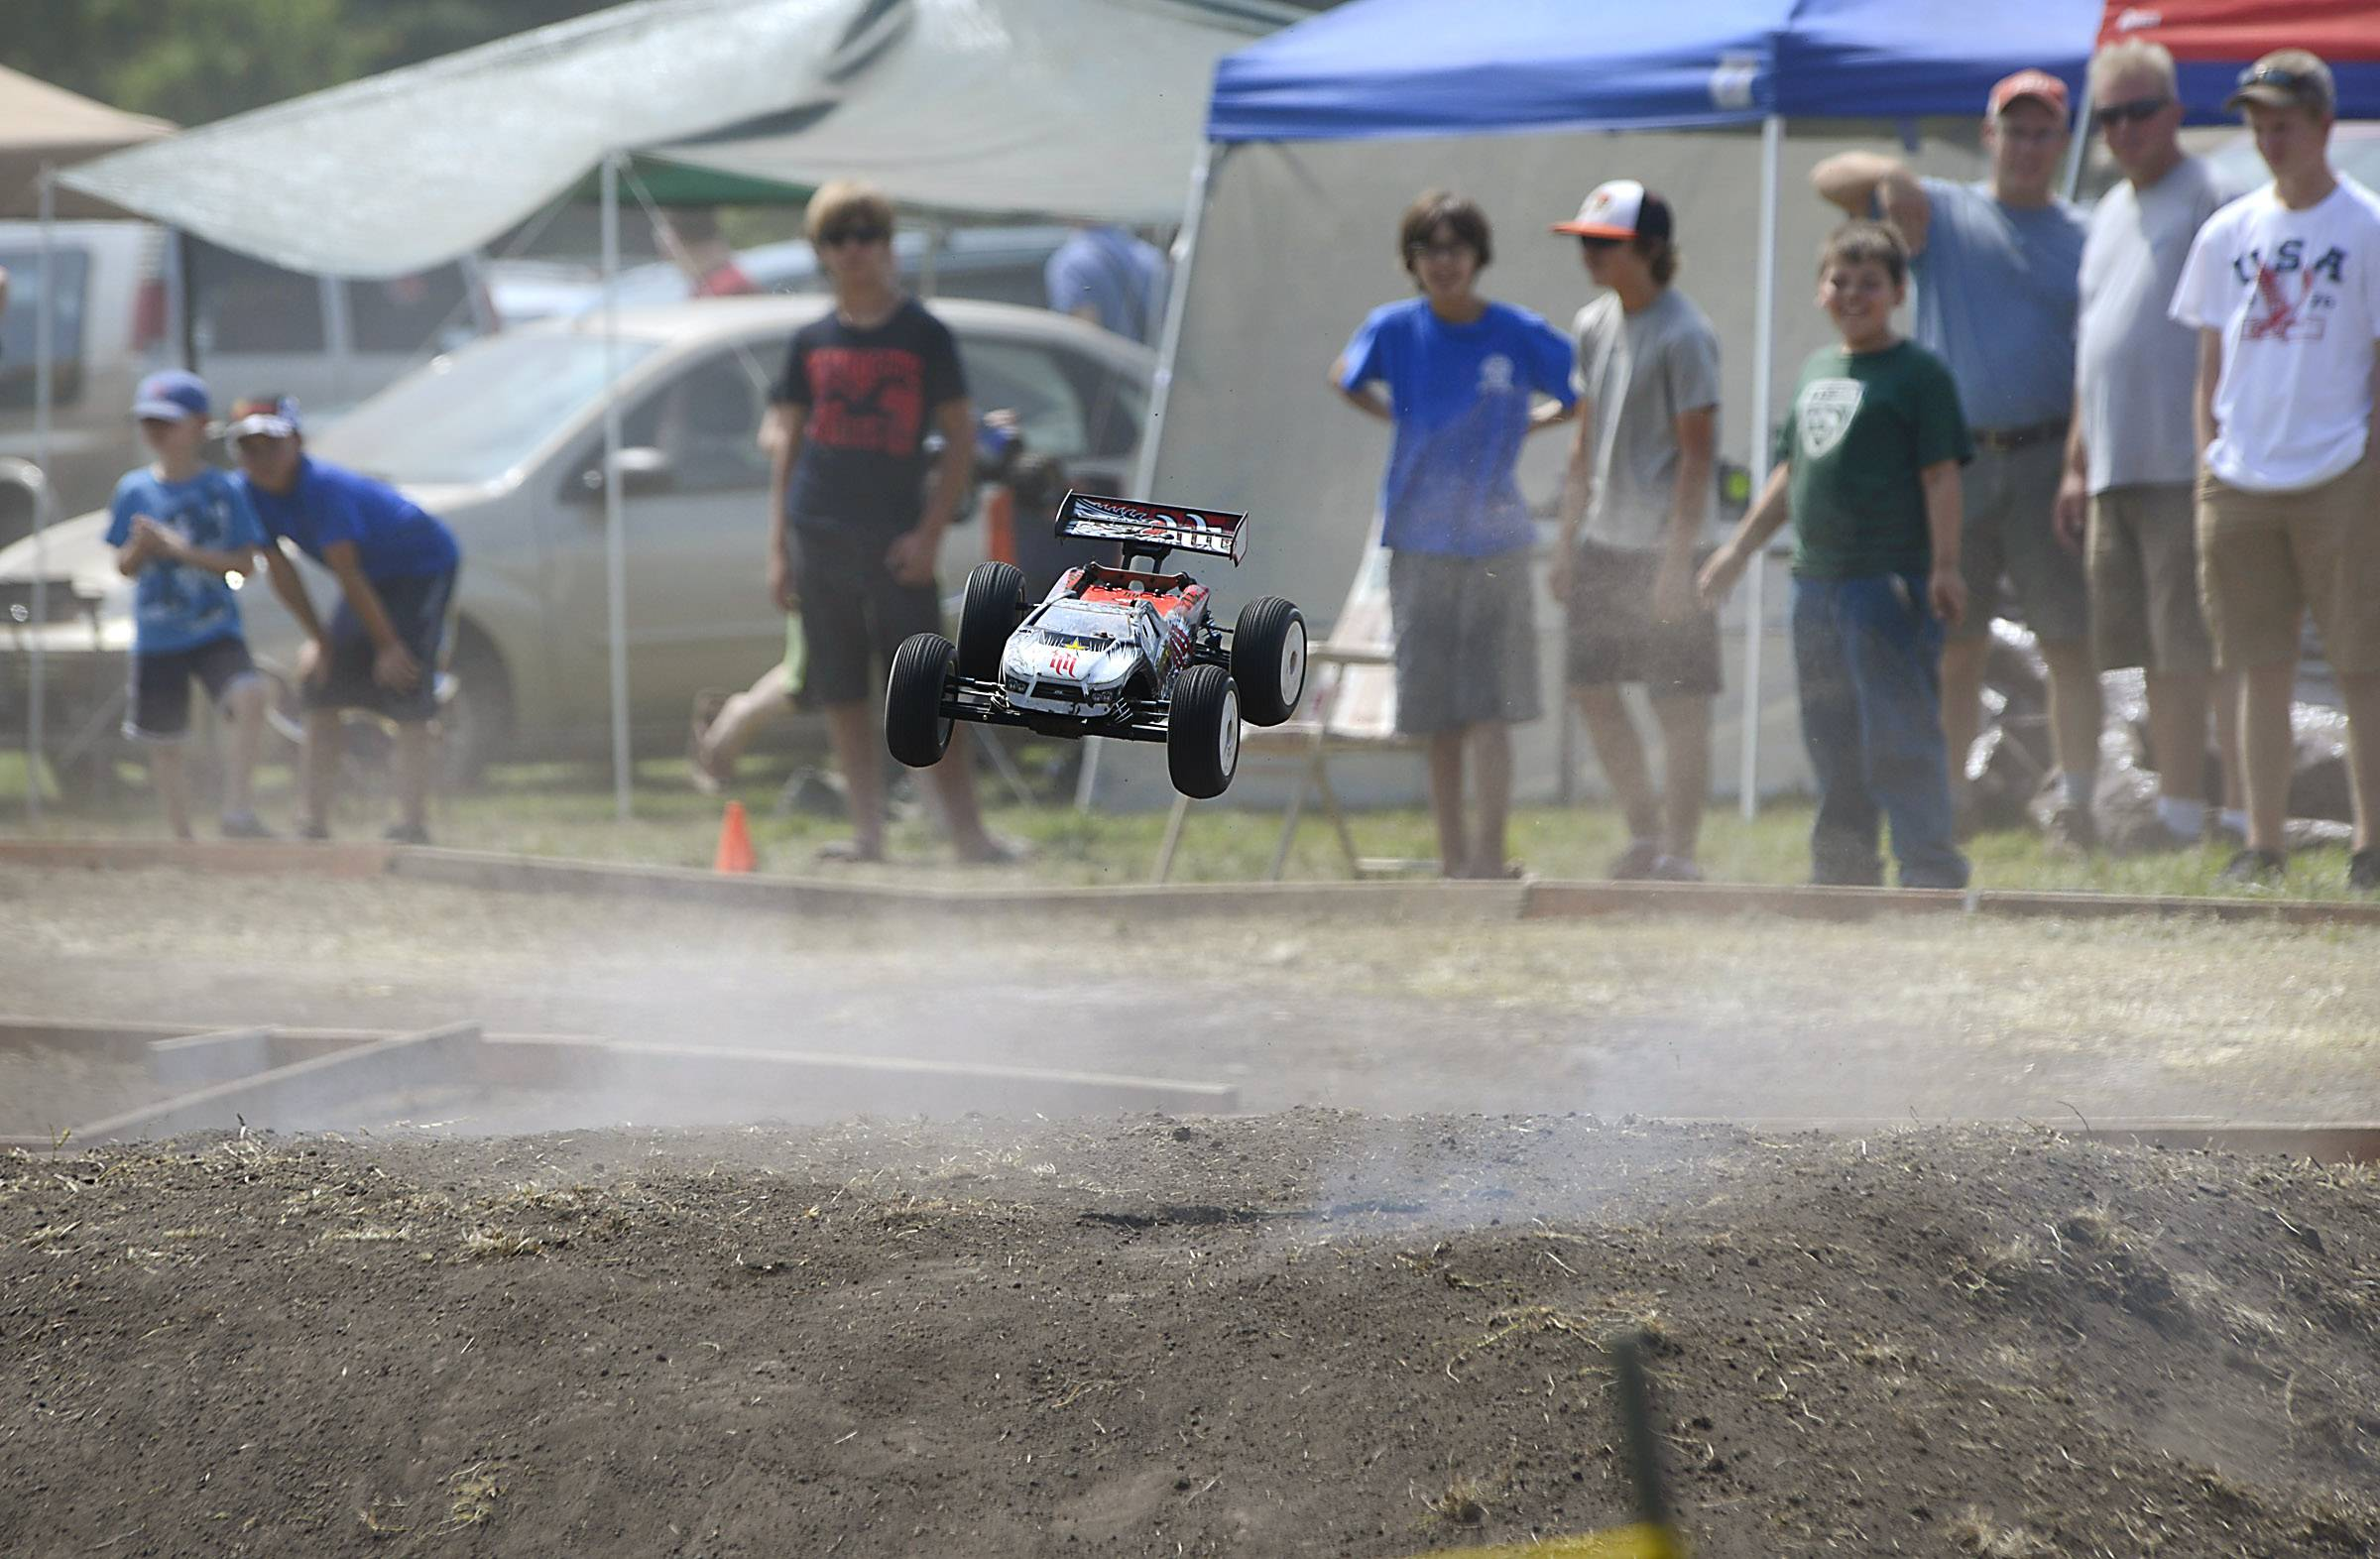 An RC car flies over a jump on the dirt track Sunday at the Elburn Days festival in Lions Park on Route 47. Competitors race in age groups and against similar cars and trucks. The racing counted toward points earned for trophies and prizes at the end of the season, from Hobby Town USA in St. Charles.